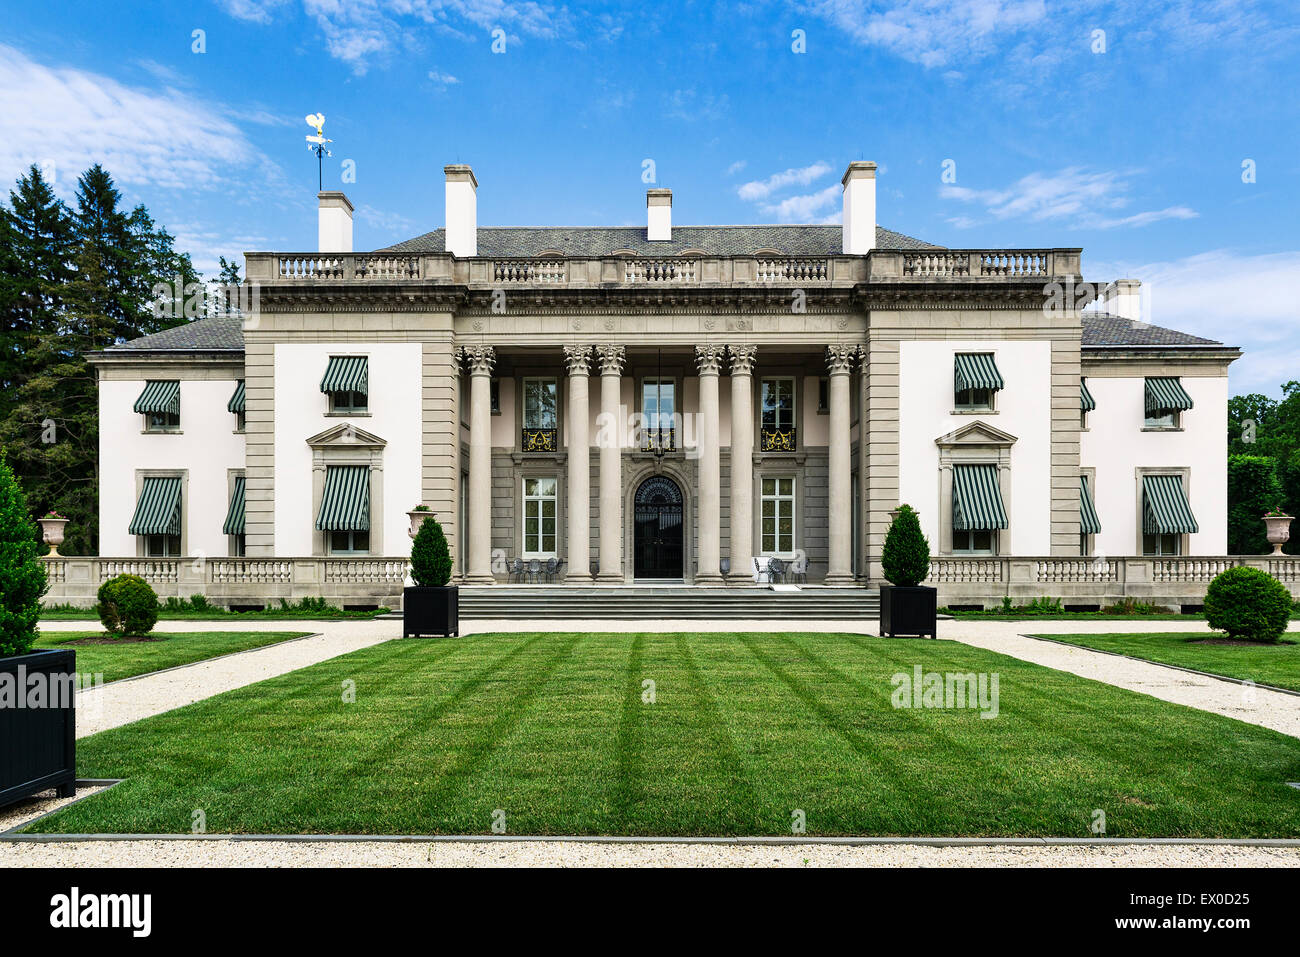 Nemours Mansion and Gardens, Wilmington, Delaware, USA - Stock Image